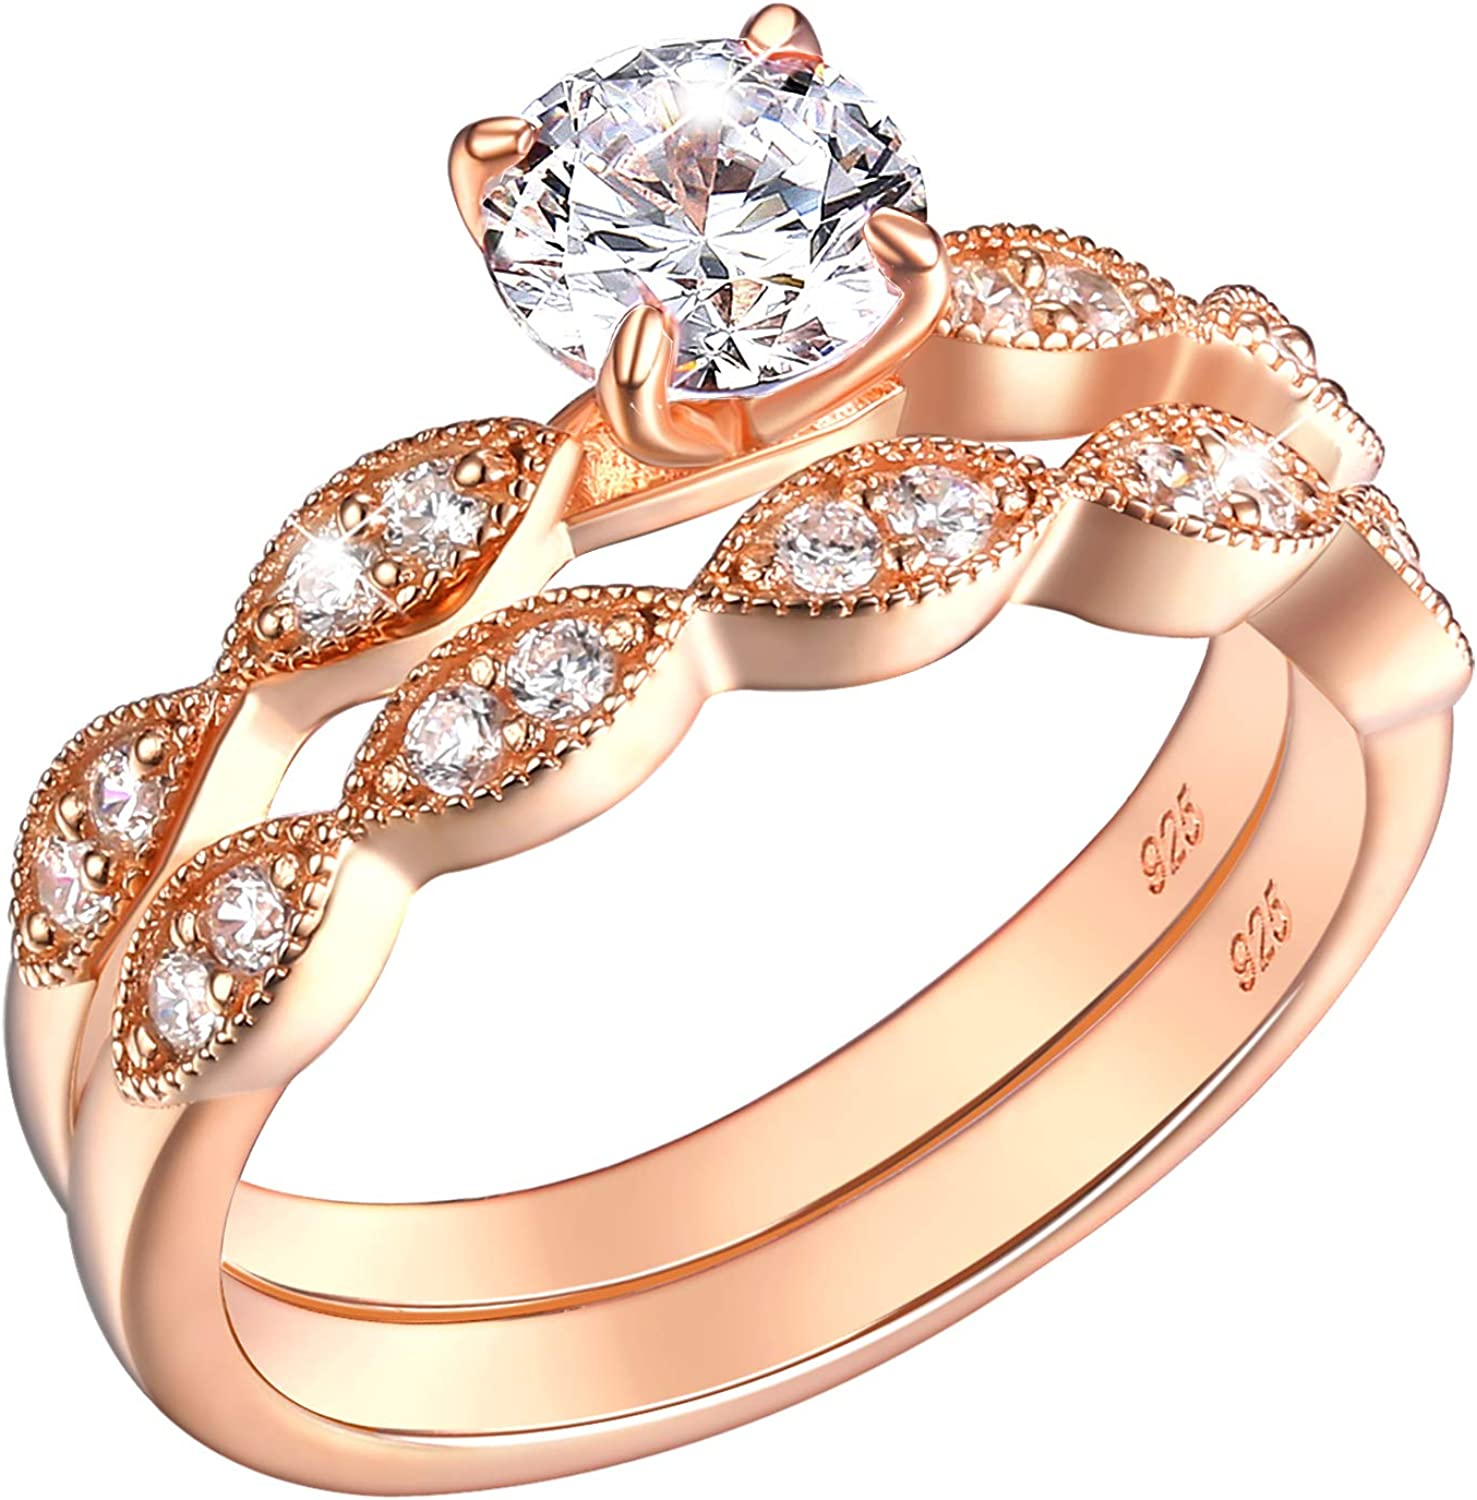 SHELOVES Rose Gold Floral Wedding Rings Engagement Set for Women Round Cz 925 Sterling Silver 5-10